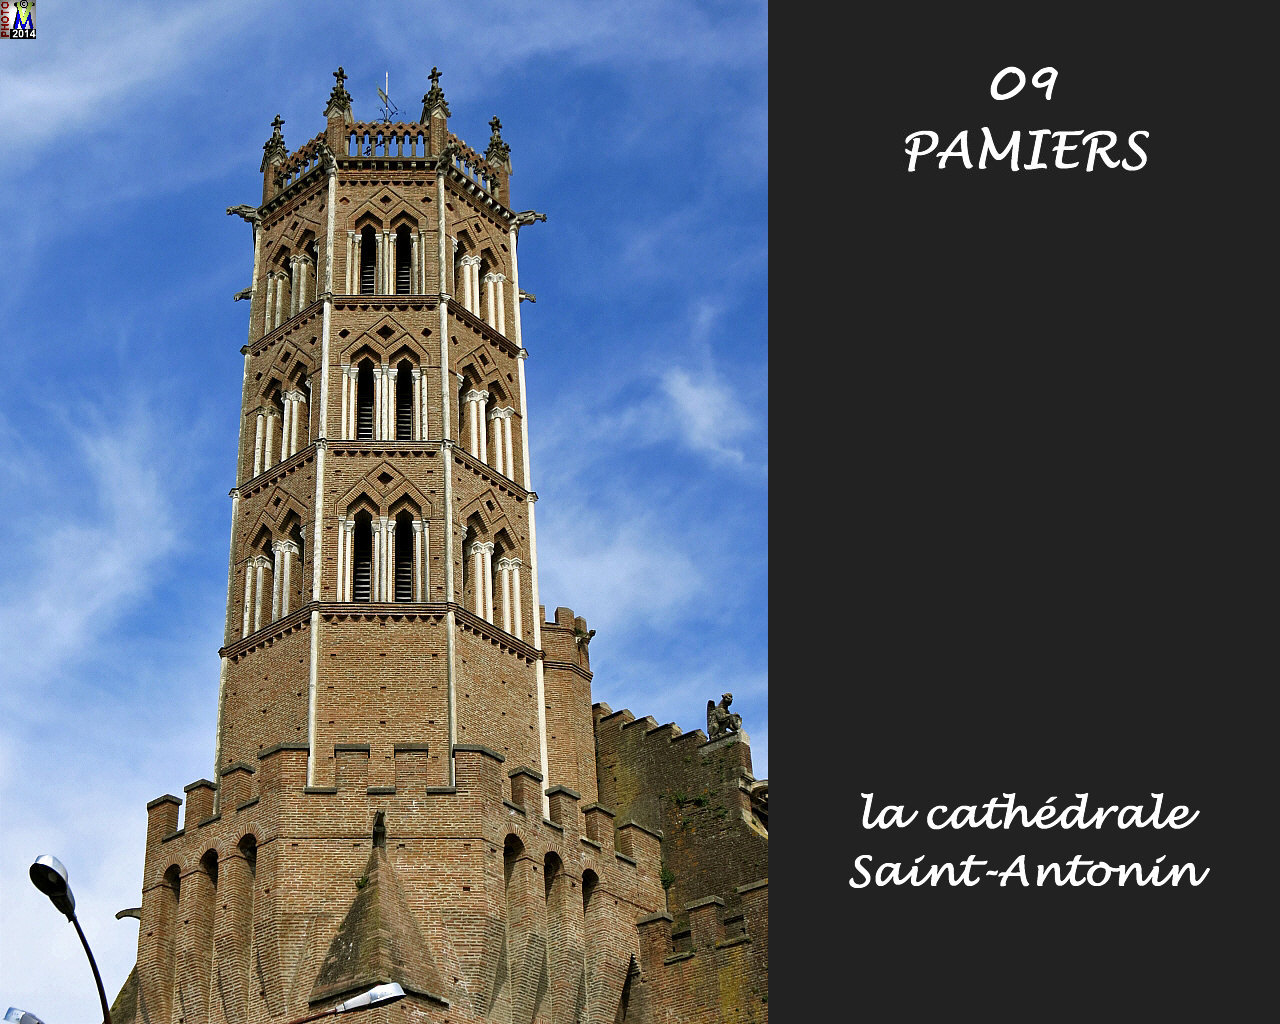 09PAMIERS_cathedrale_110.jpg